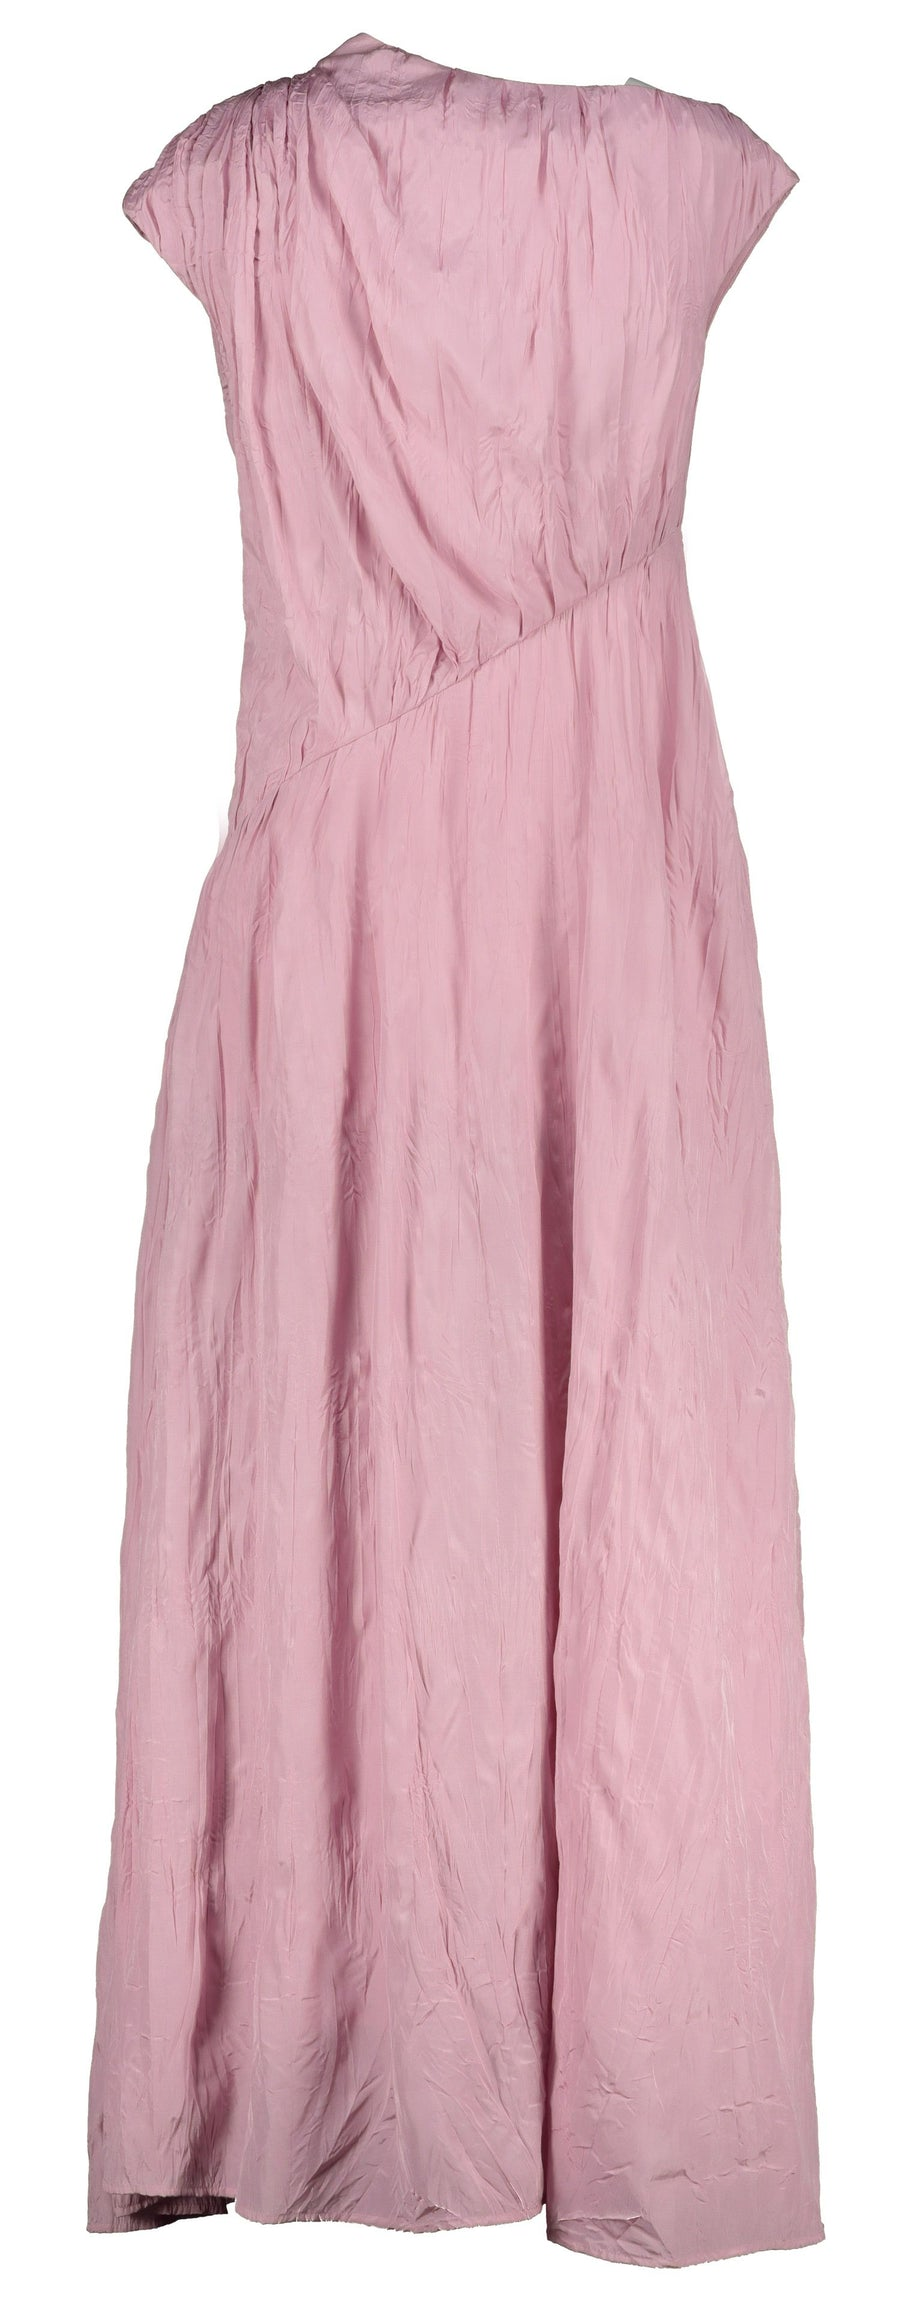 Irada pink chiffon dress